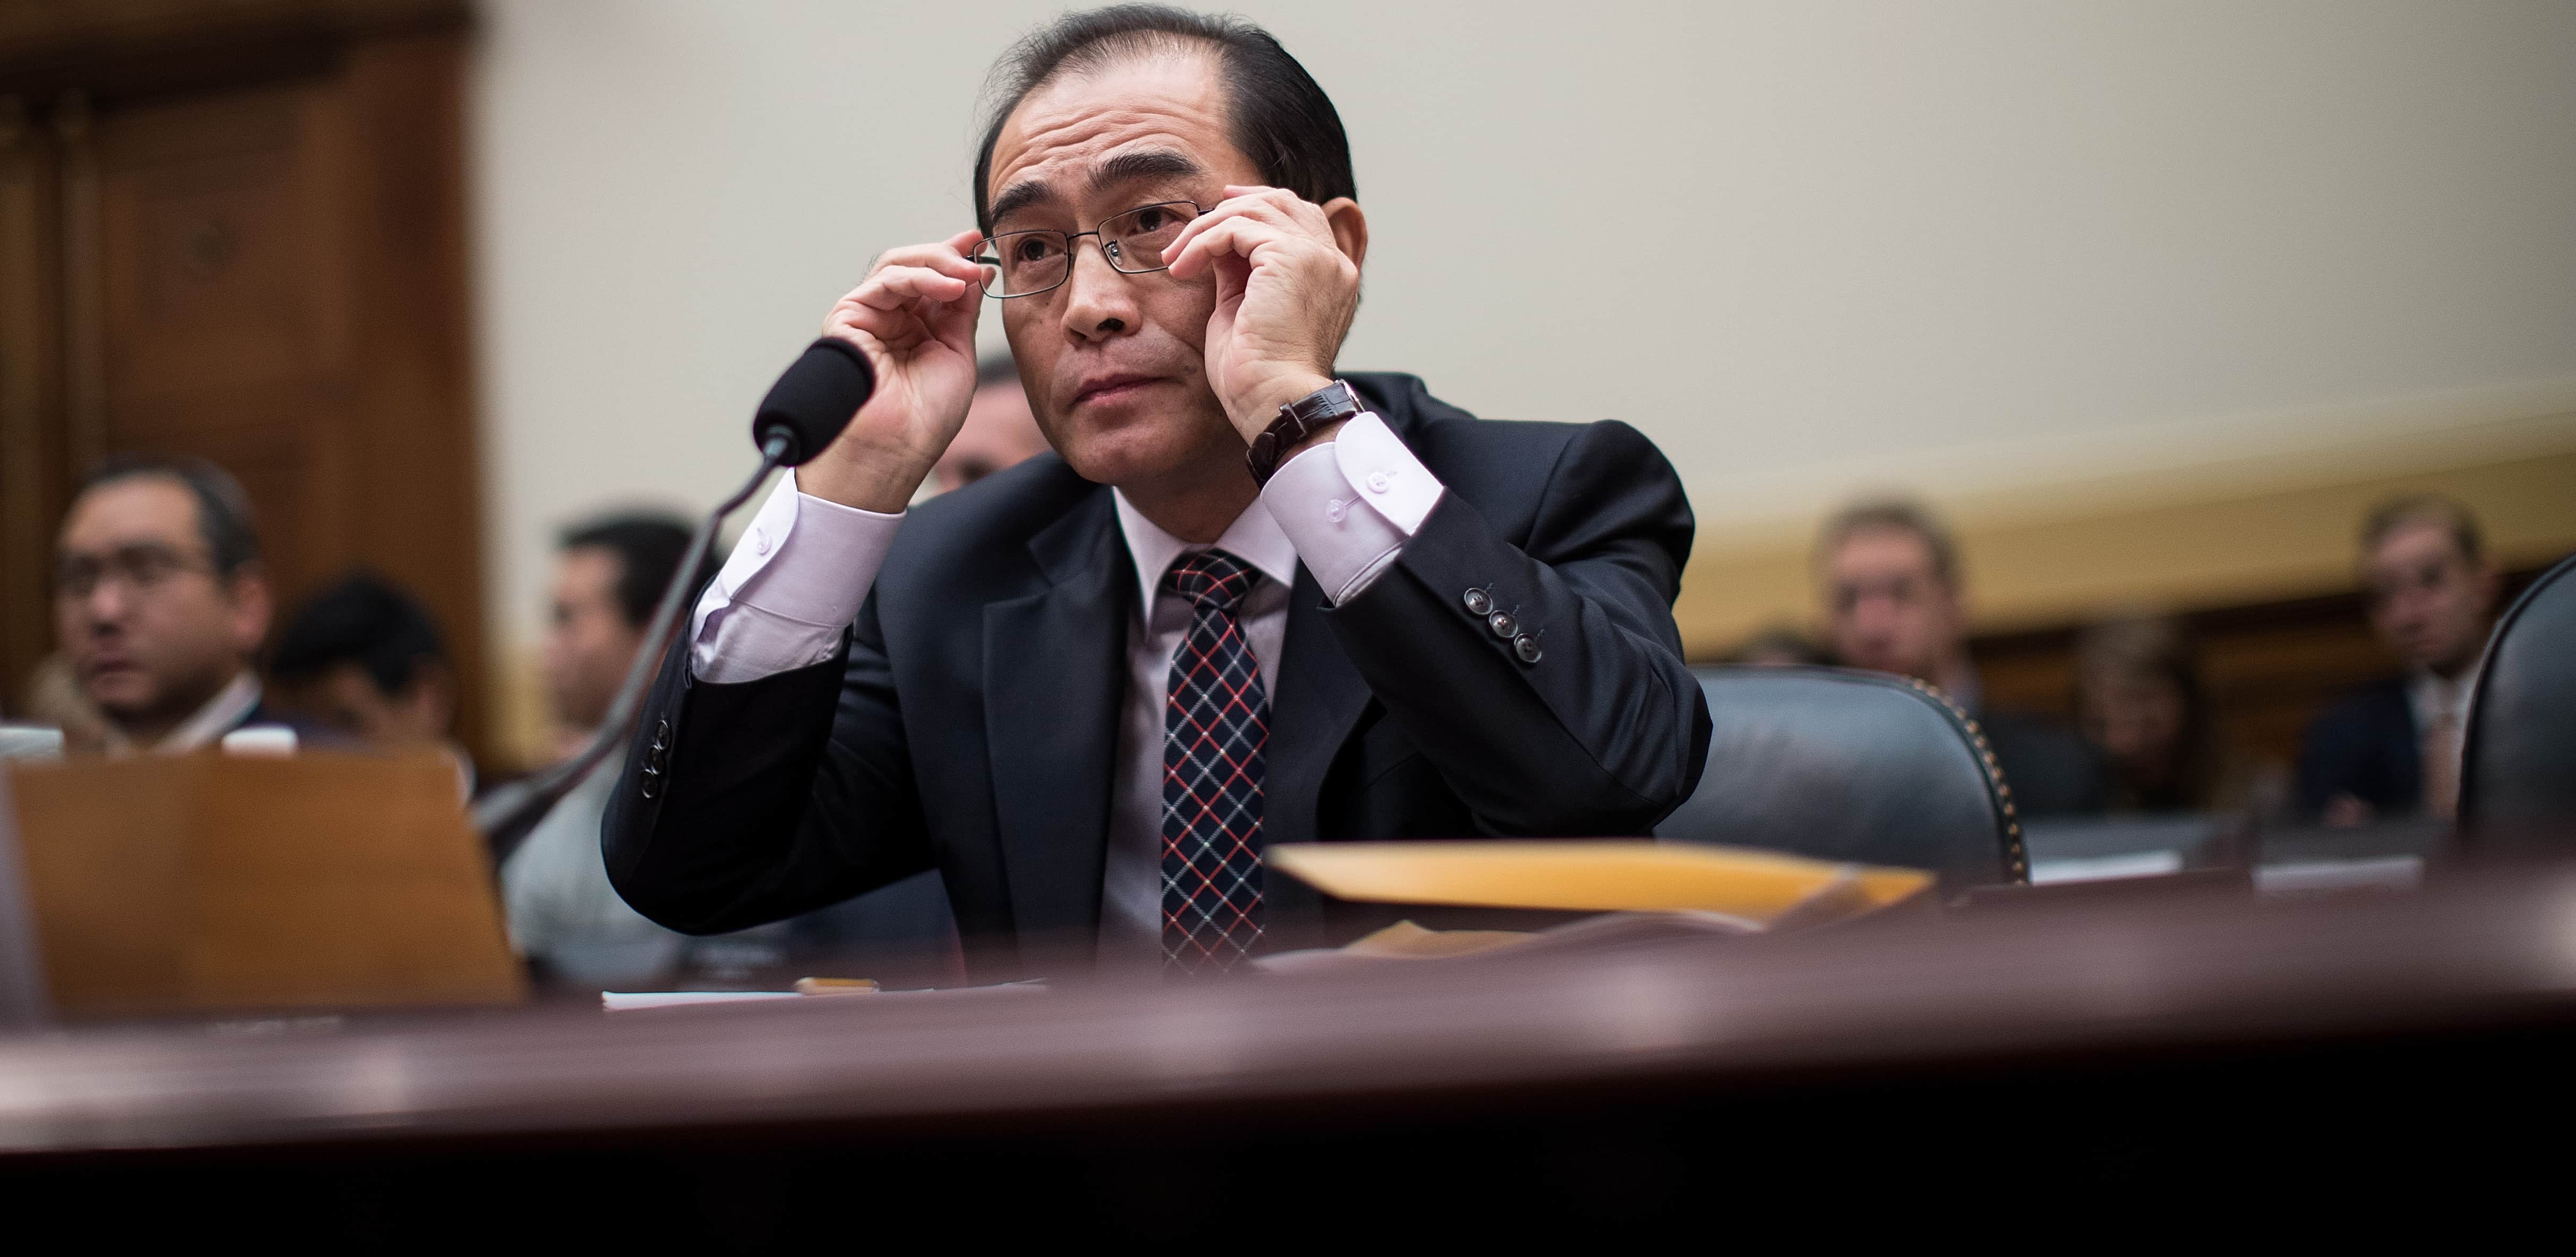 Thae Yong-ho, former chief of mission at the North Korean embassy in the UK, testifies during a US House Foreign Affairs Committee hearing, November 2017 (Photo: Drew Angerer/Getty Images